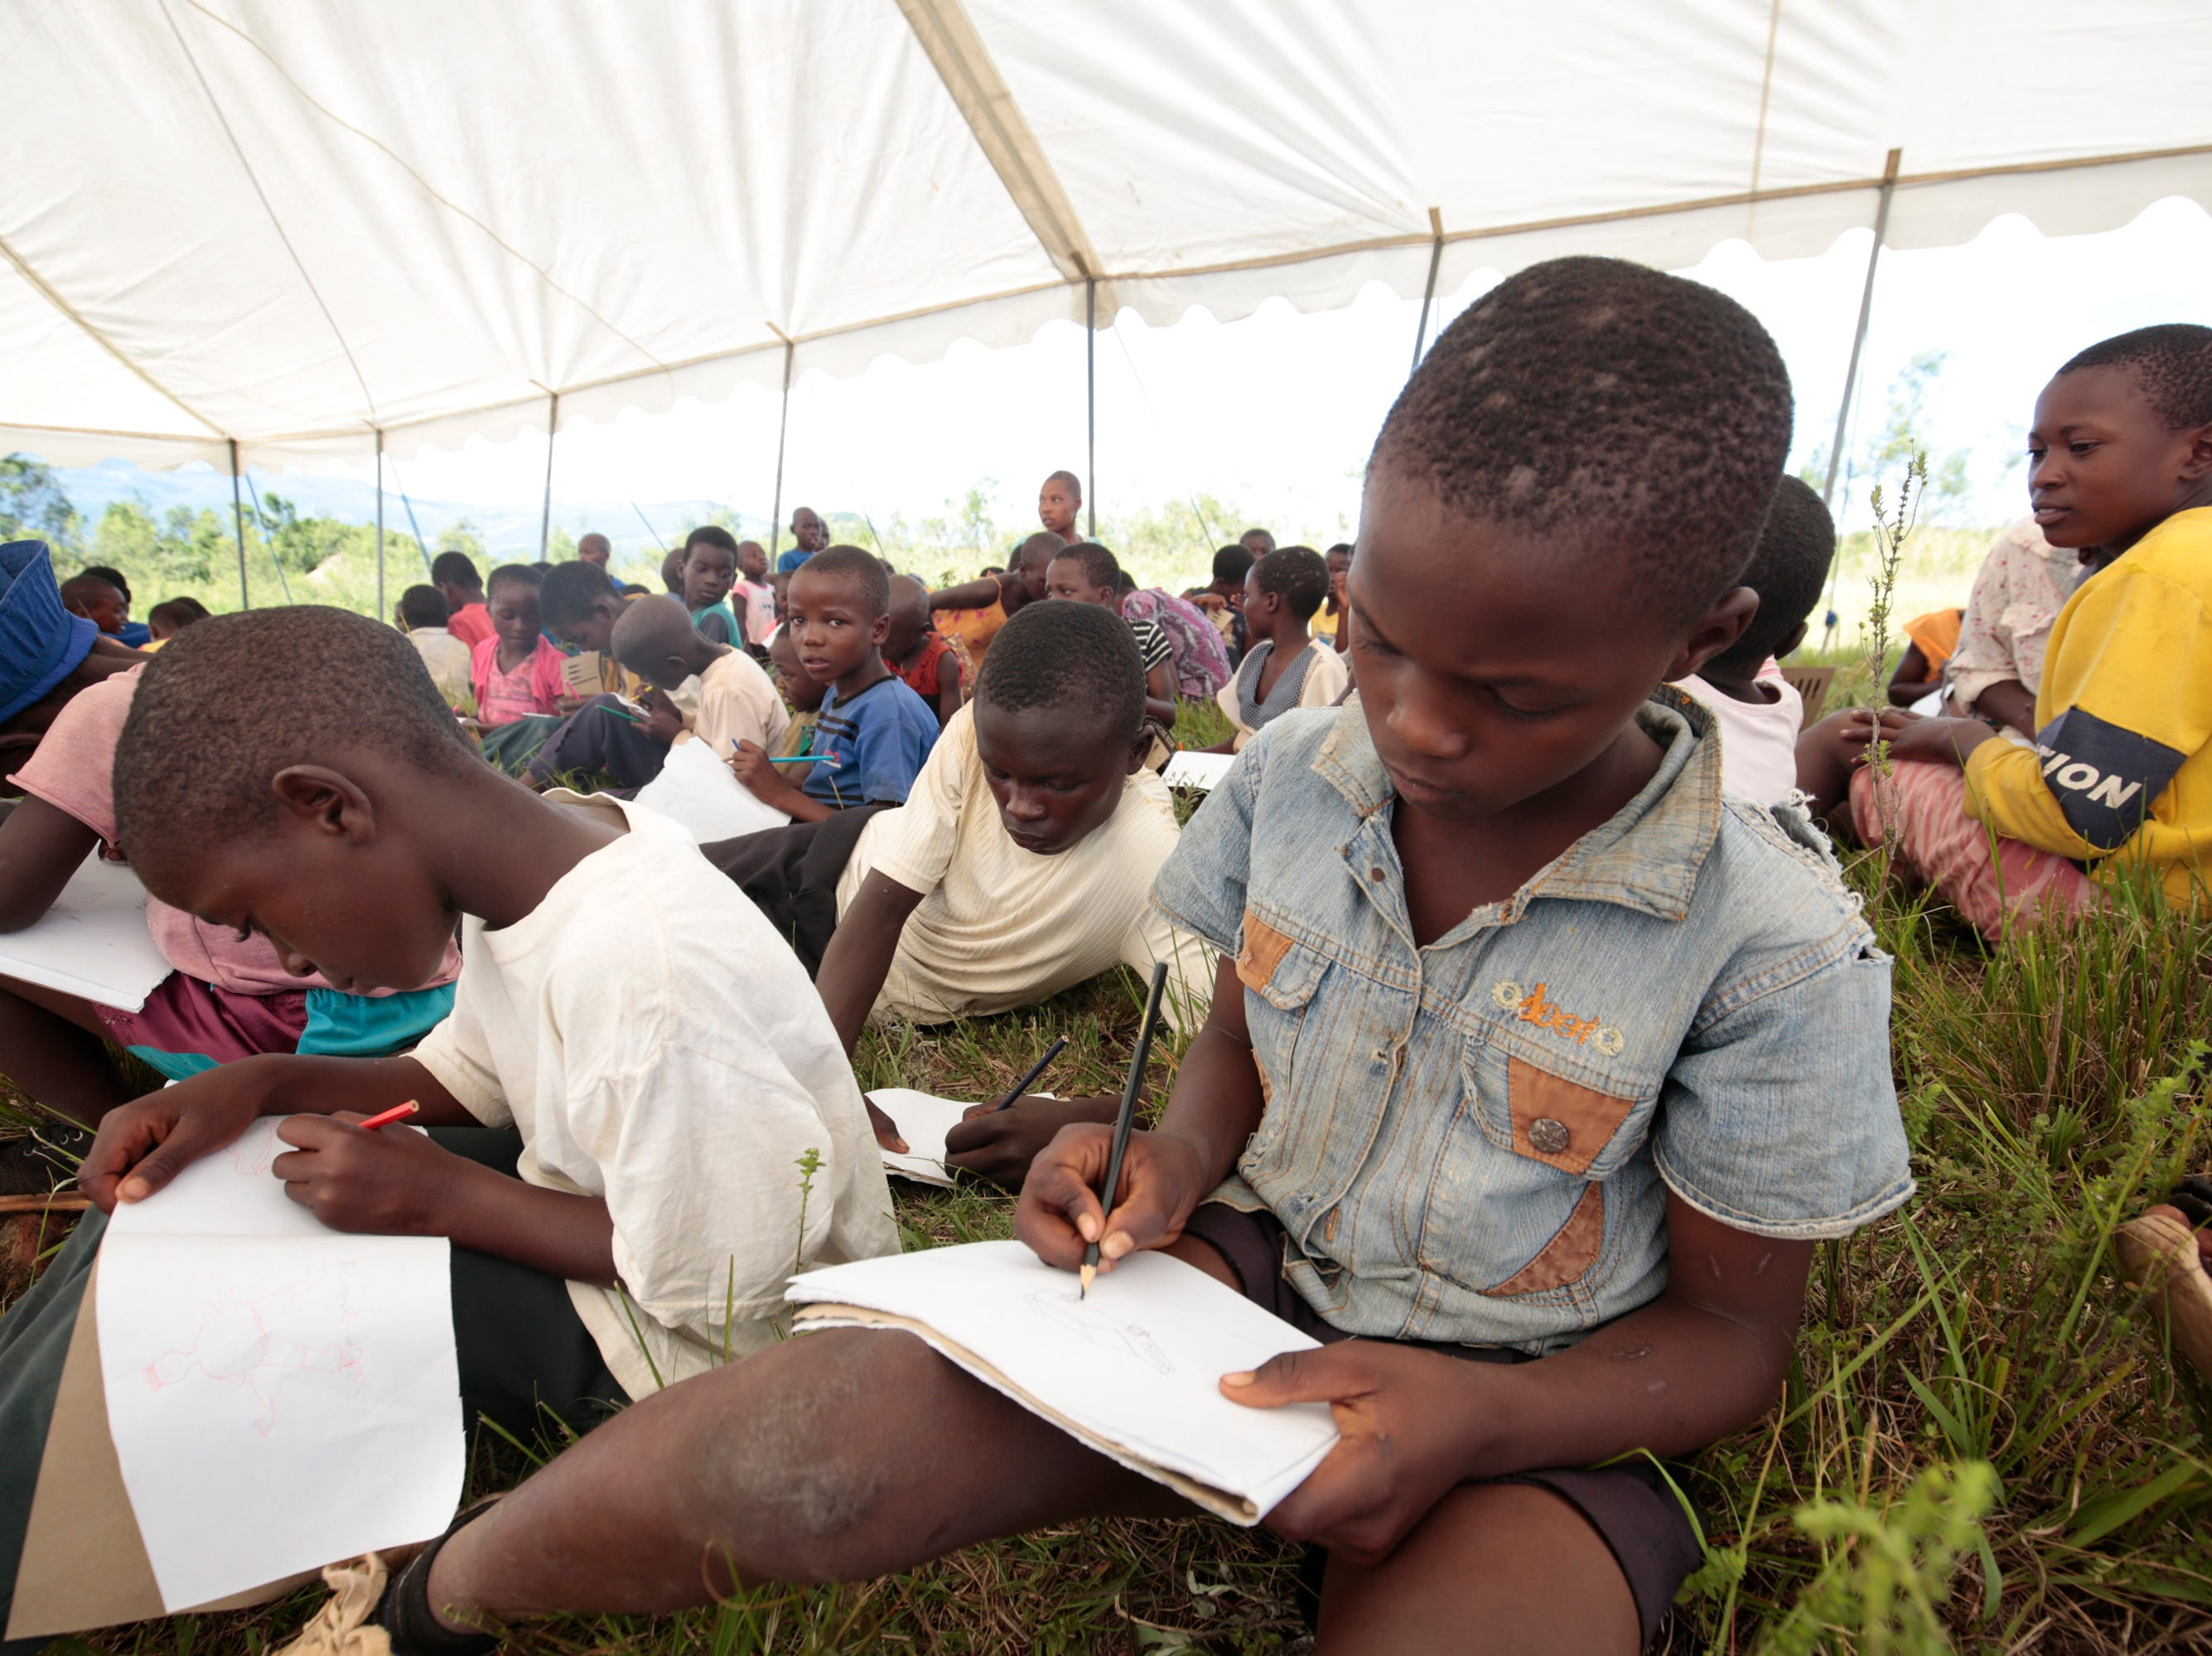 Children who have not been going to school in the aftermath of Cyclone Idai devastations, are being educated by the Regional Psychosocial Support Initiative (REPSSI), which offers  psychosocial support, technical expert, capacity builder and advocacy, in Chimanimani, Zimbabwe on March 21, 2019.